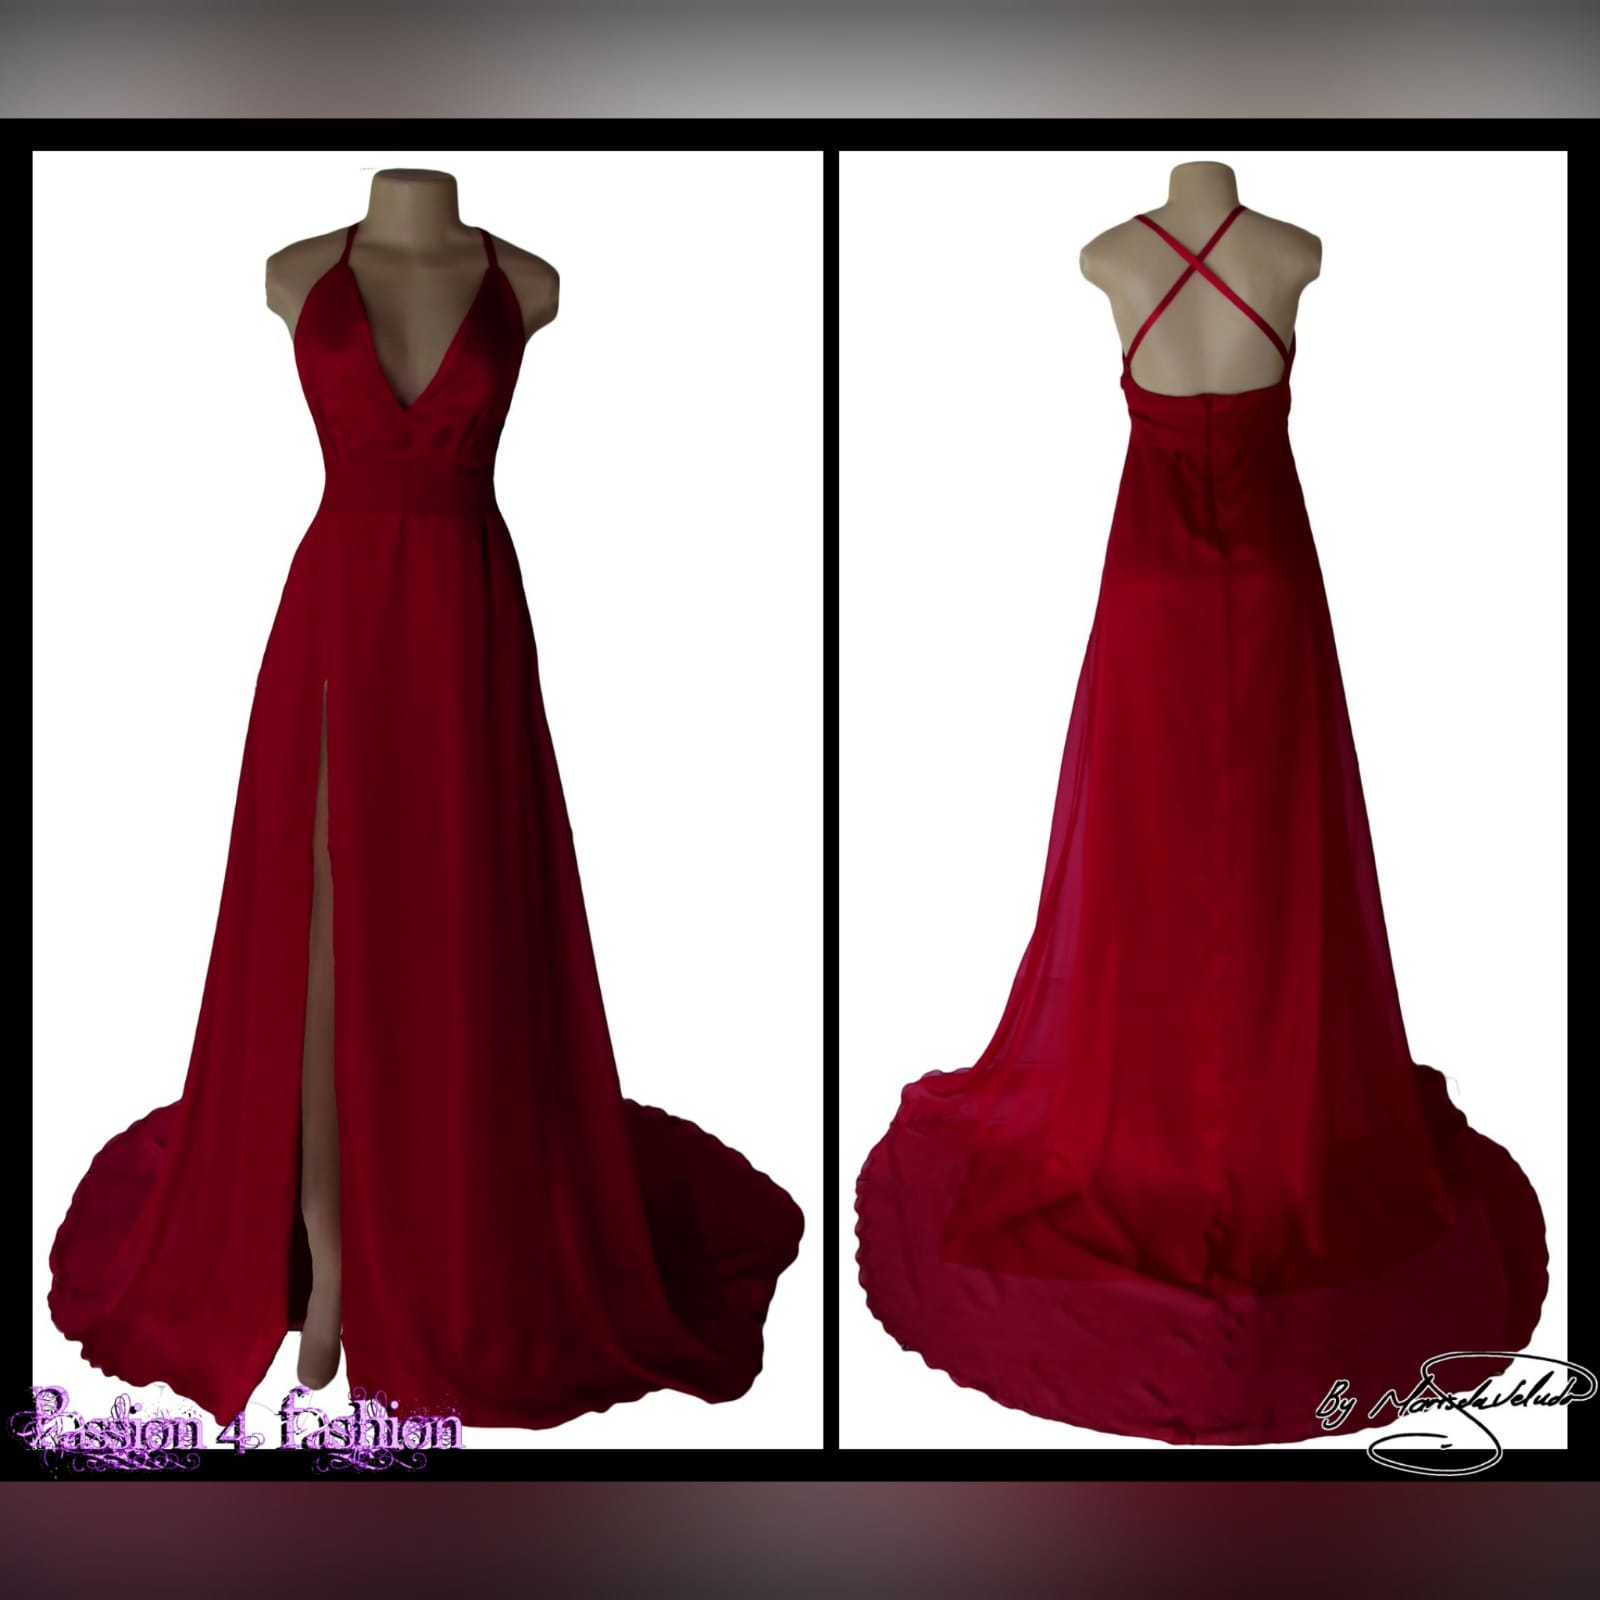 Long red flowy formal dress 4 long red flowy formal dress, with a low v neckline, low open back with crossed thin shoulder straps. Wide waist belt, high slit and a train. A design suitable for various occasions, made per measurements any colour you want.